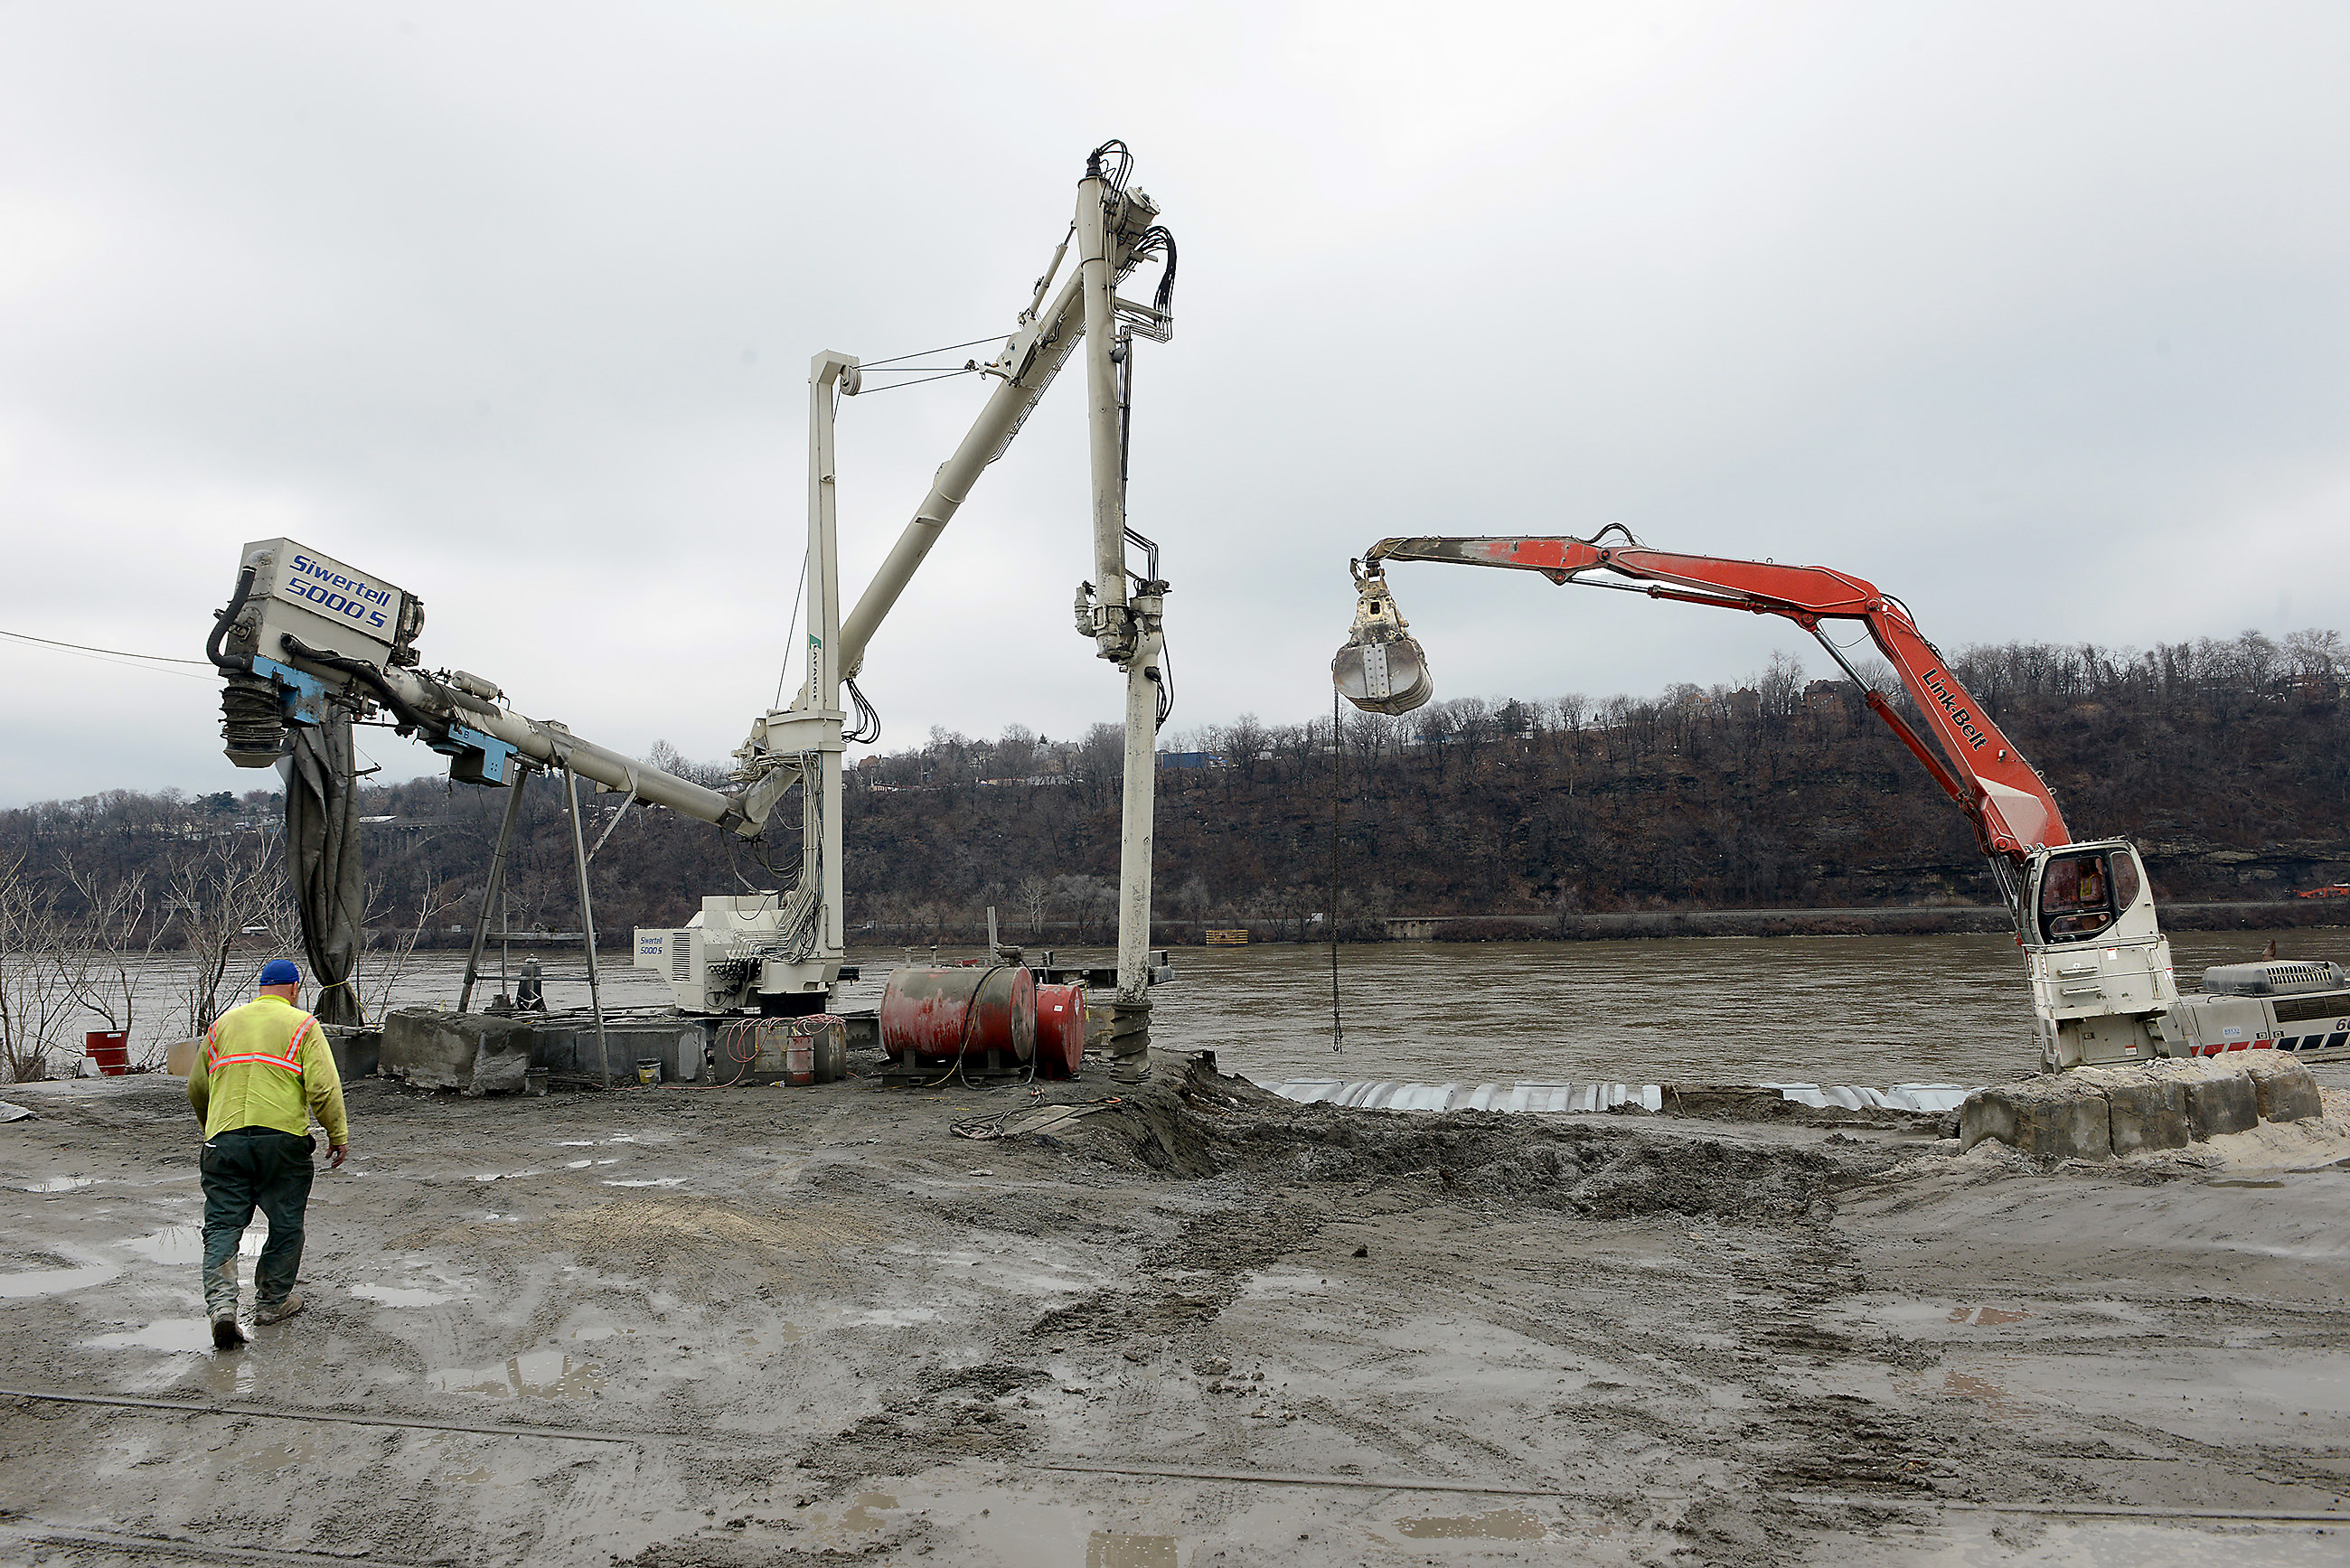 20150320MWHmrieBiz05-4 Michael Henninger/Post-Gazette 20150320 mrie Biz 03/20/2015 Equipment used to unload barges rest at the edge of the Ohio River at McKees Rocks Industrial Enterprises. An auger, left, and a Link-Belt excavator, right are used to process and move sand from incoming barges.